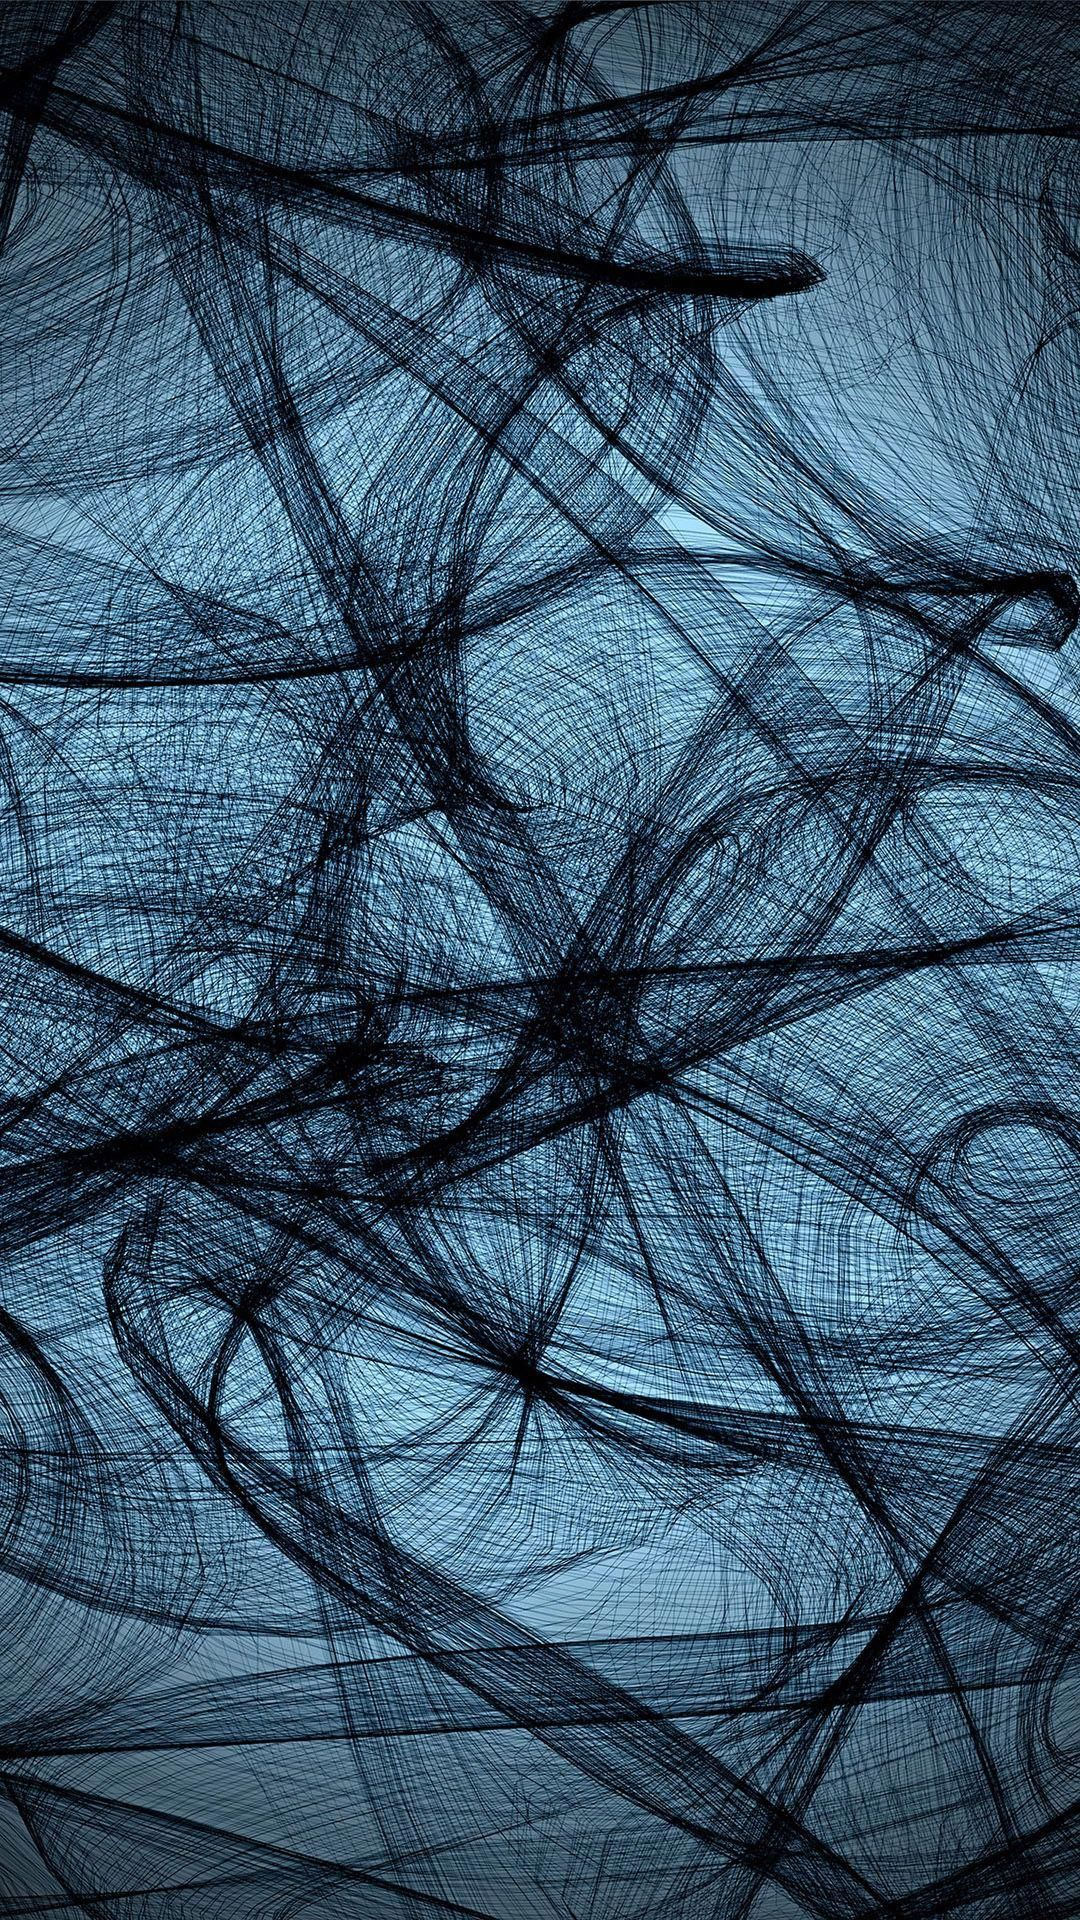 Blue Black Abstract Astheticwallpaperiphoneblack Iphone Wallpaper Abstract Textured Wallpaper